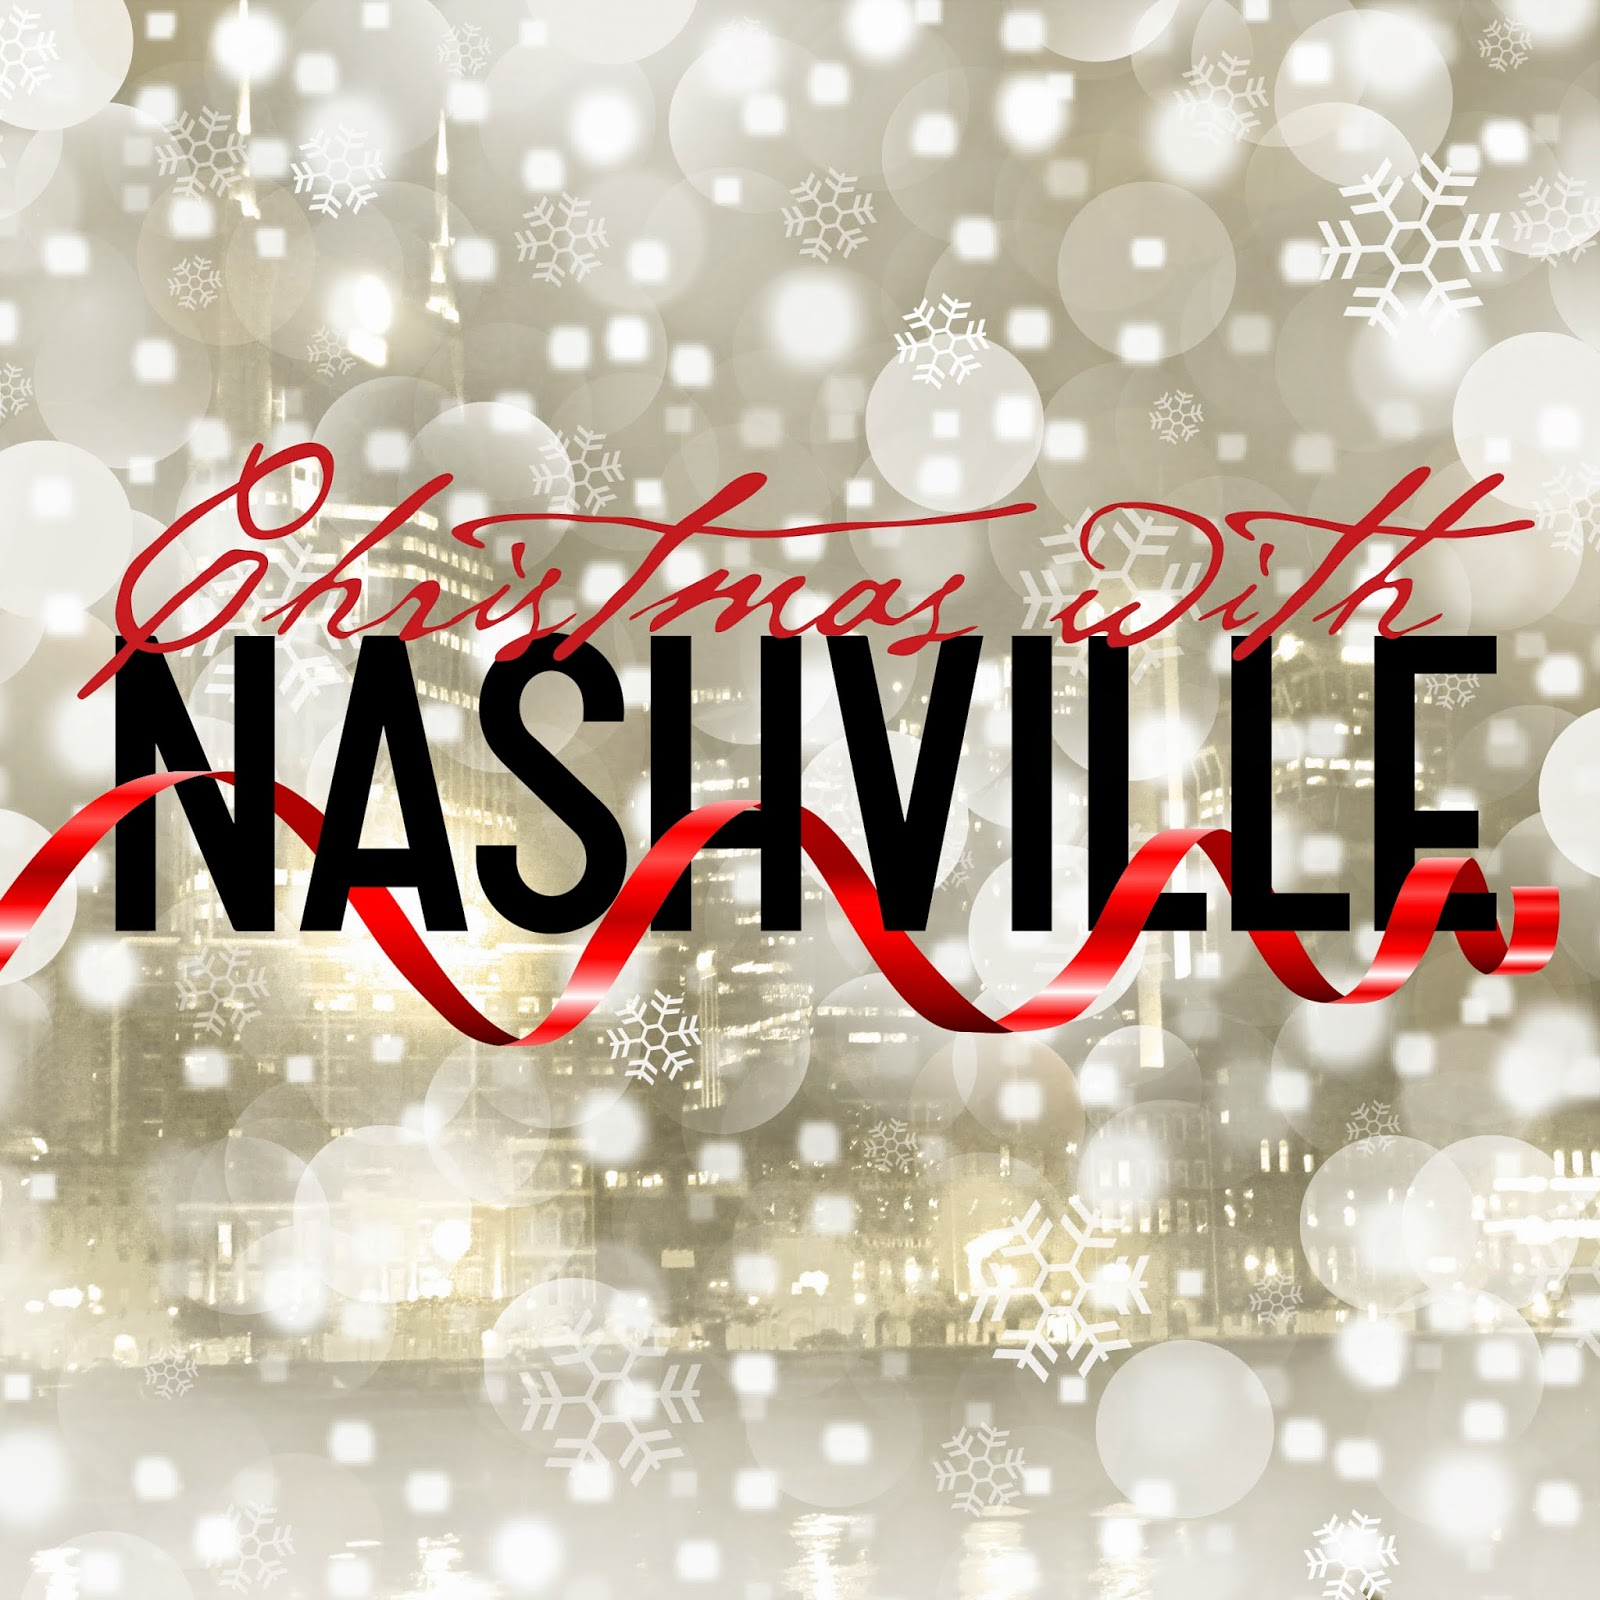 http://discover.halifaxpubliclibraries.ca/?q=title:christmas%20with%20nashville